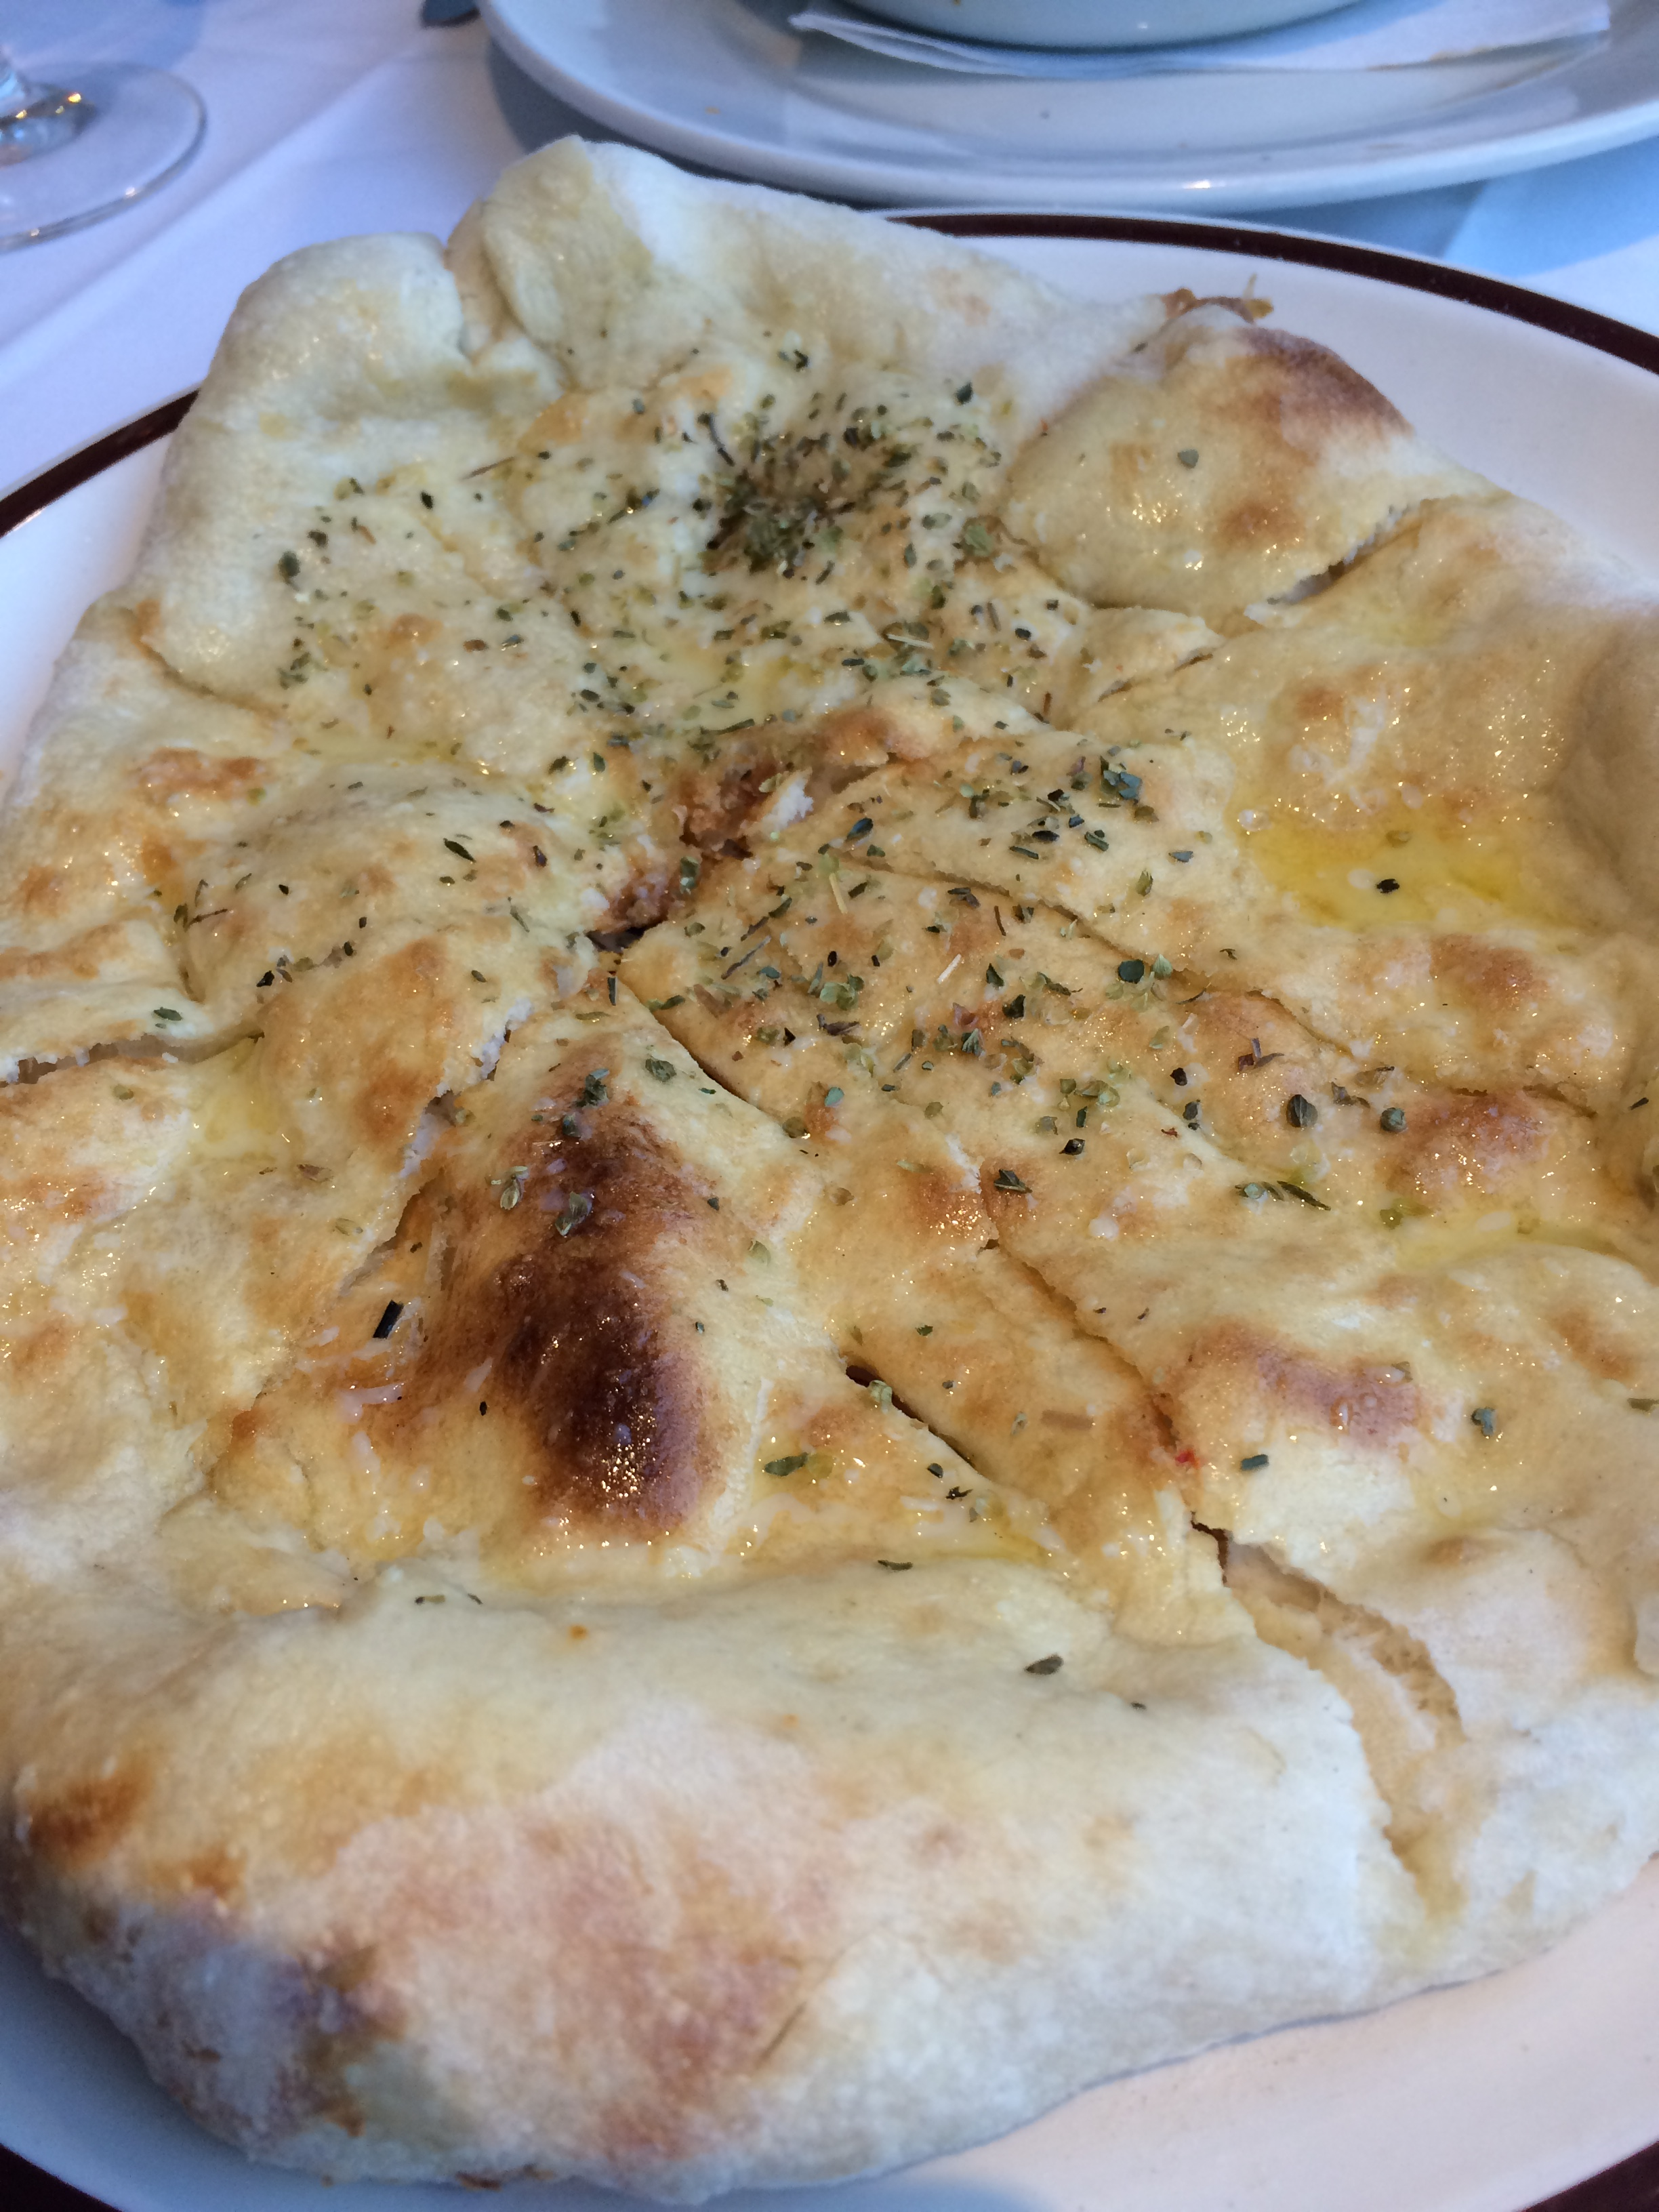 Garlic pizza bread. A nice starter